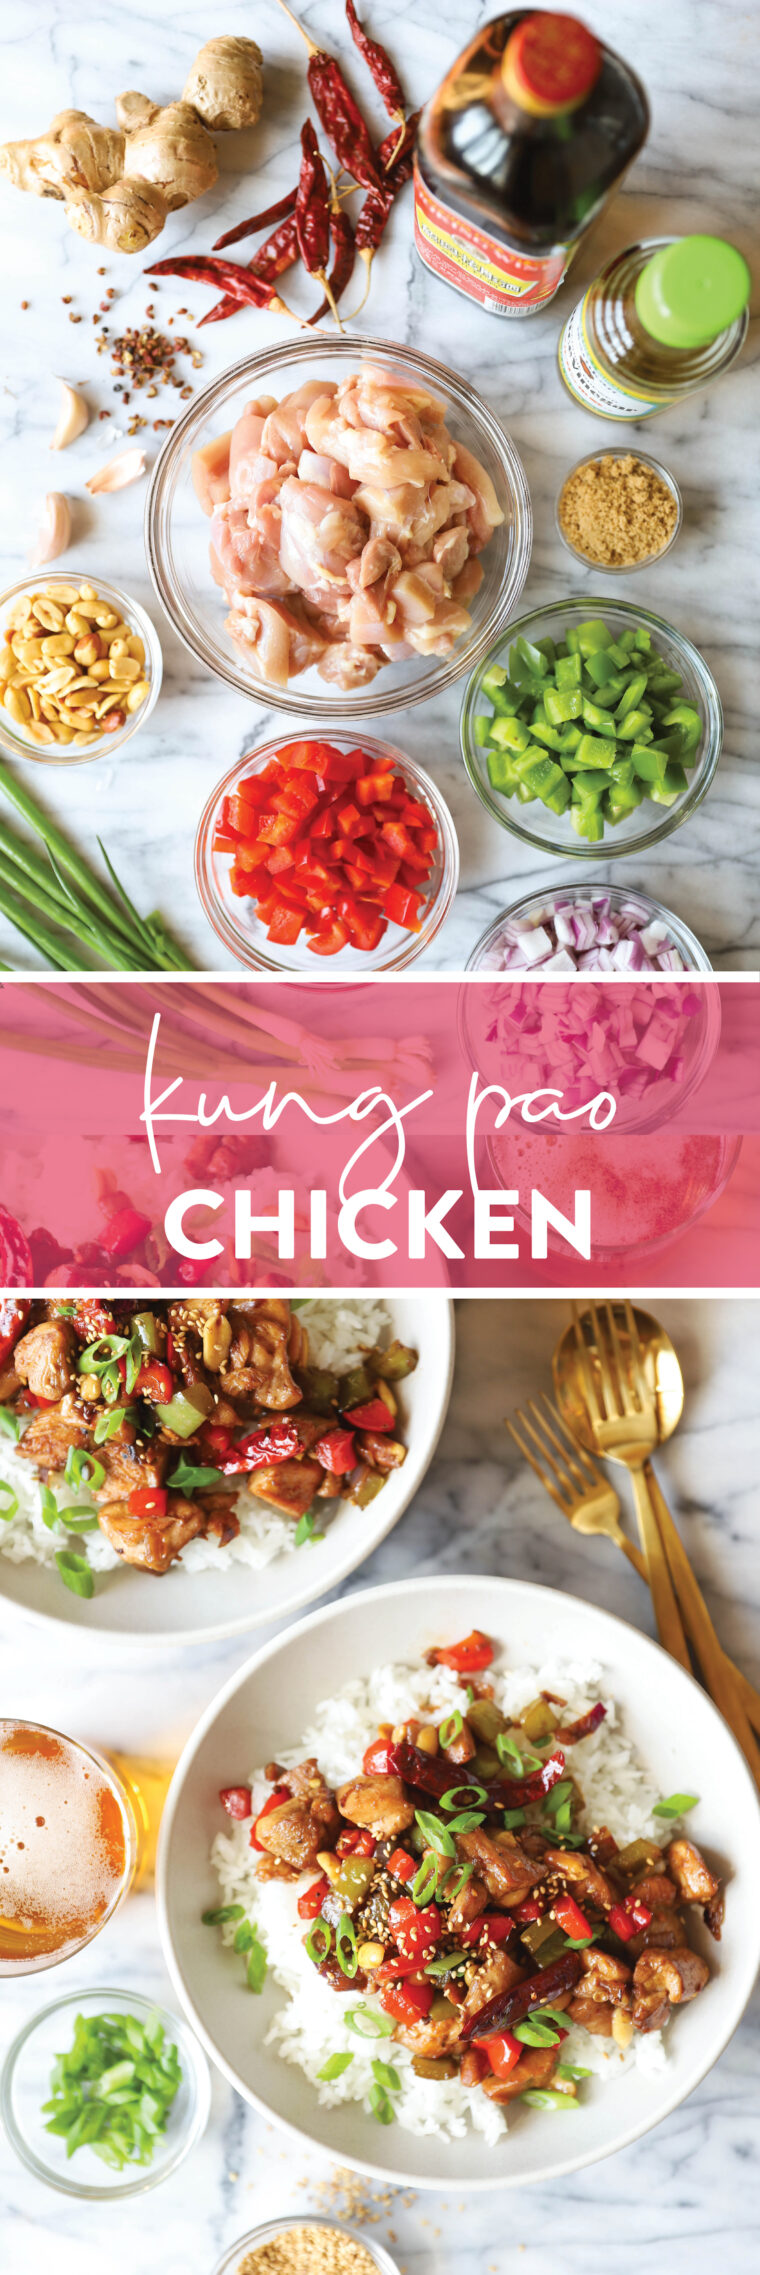 Kung Pao Chicken - Everyone's favorite chicken stir-fry made so easily right at home! Slightly salty, sweet, sour + spicy. A winning combo!